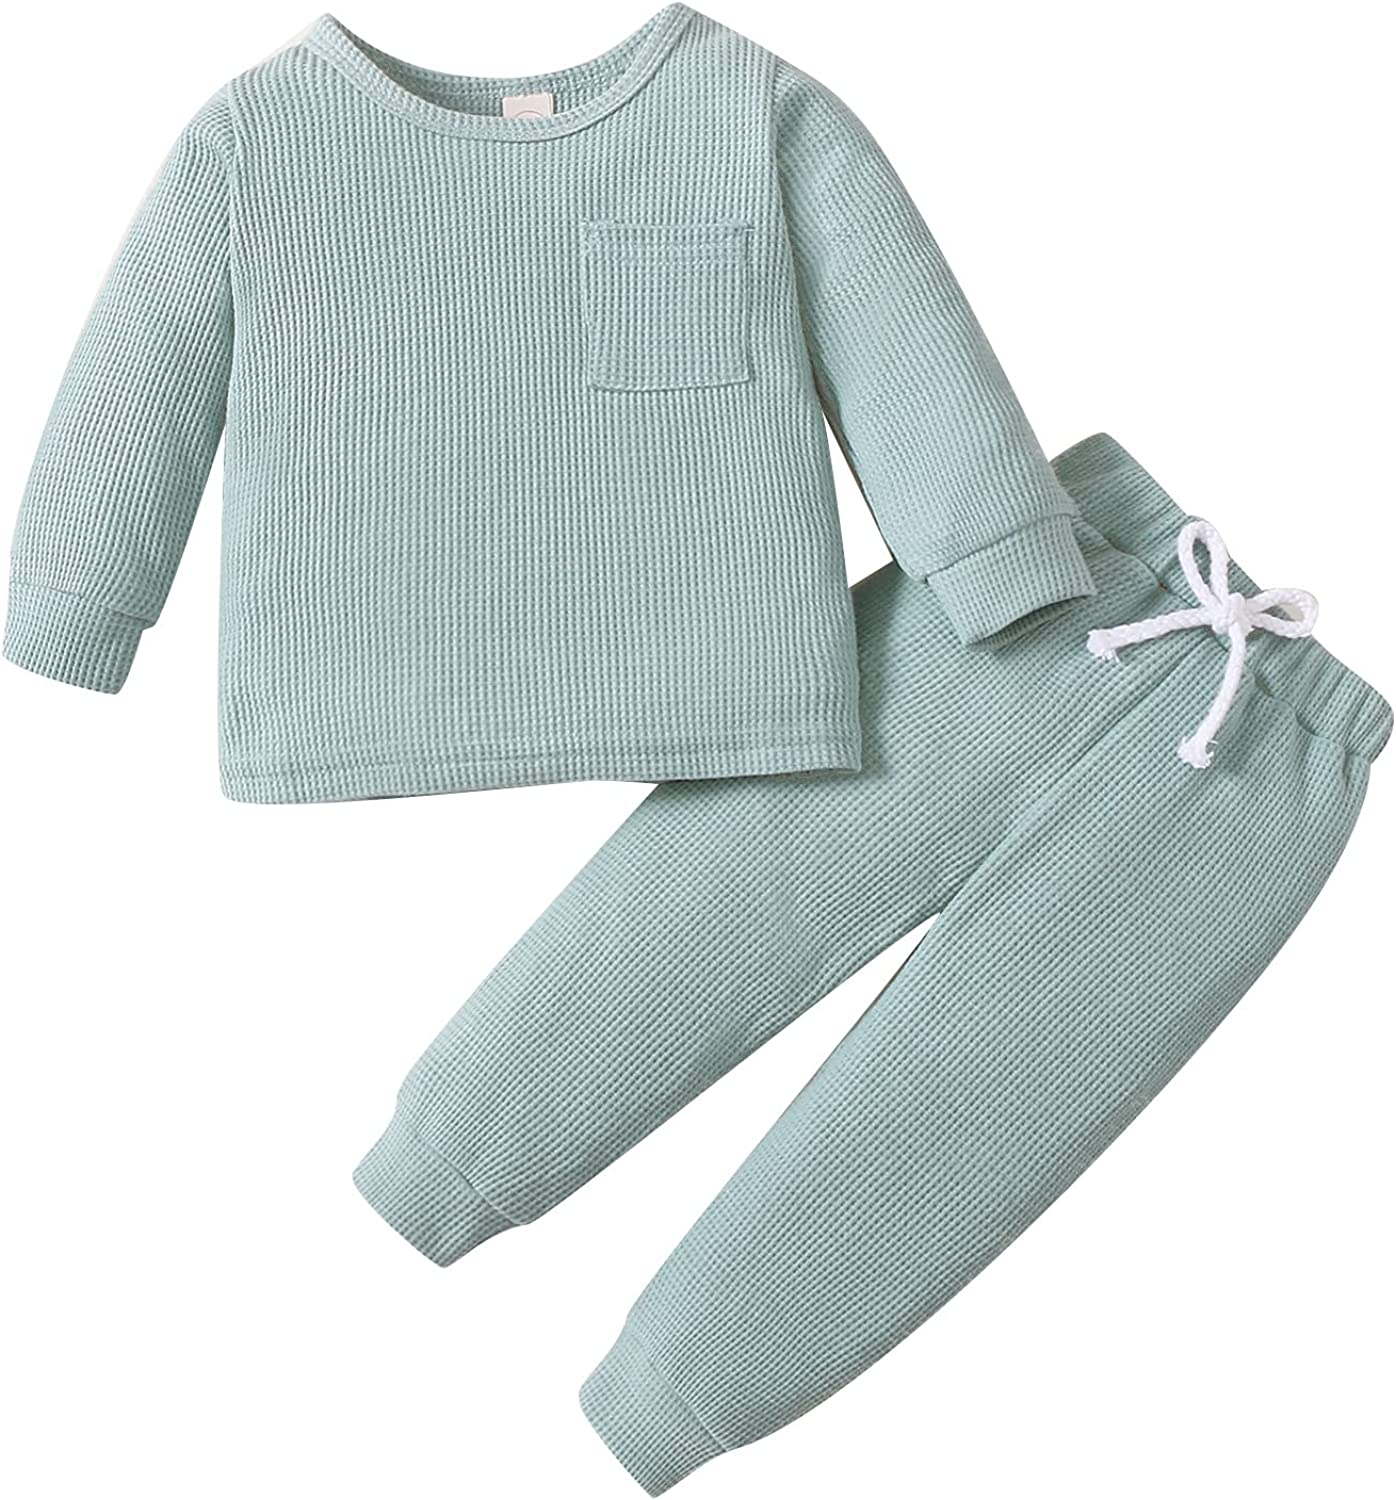 Winter Newborn Baby Girl Boy Clothes Unisex Infant Baby Solid Outfit Waffle Top T-shirt Elastic Pant Toddler Ribbed Outfit